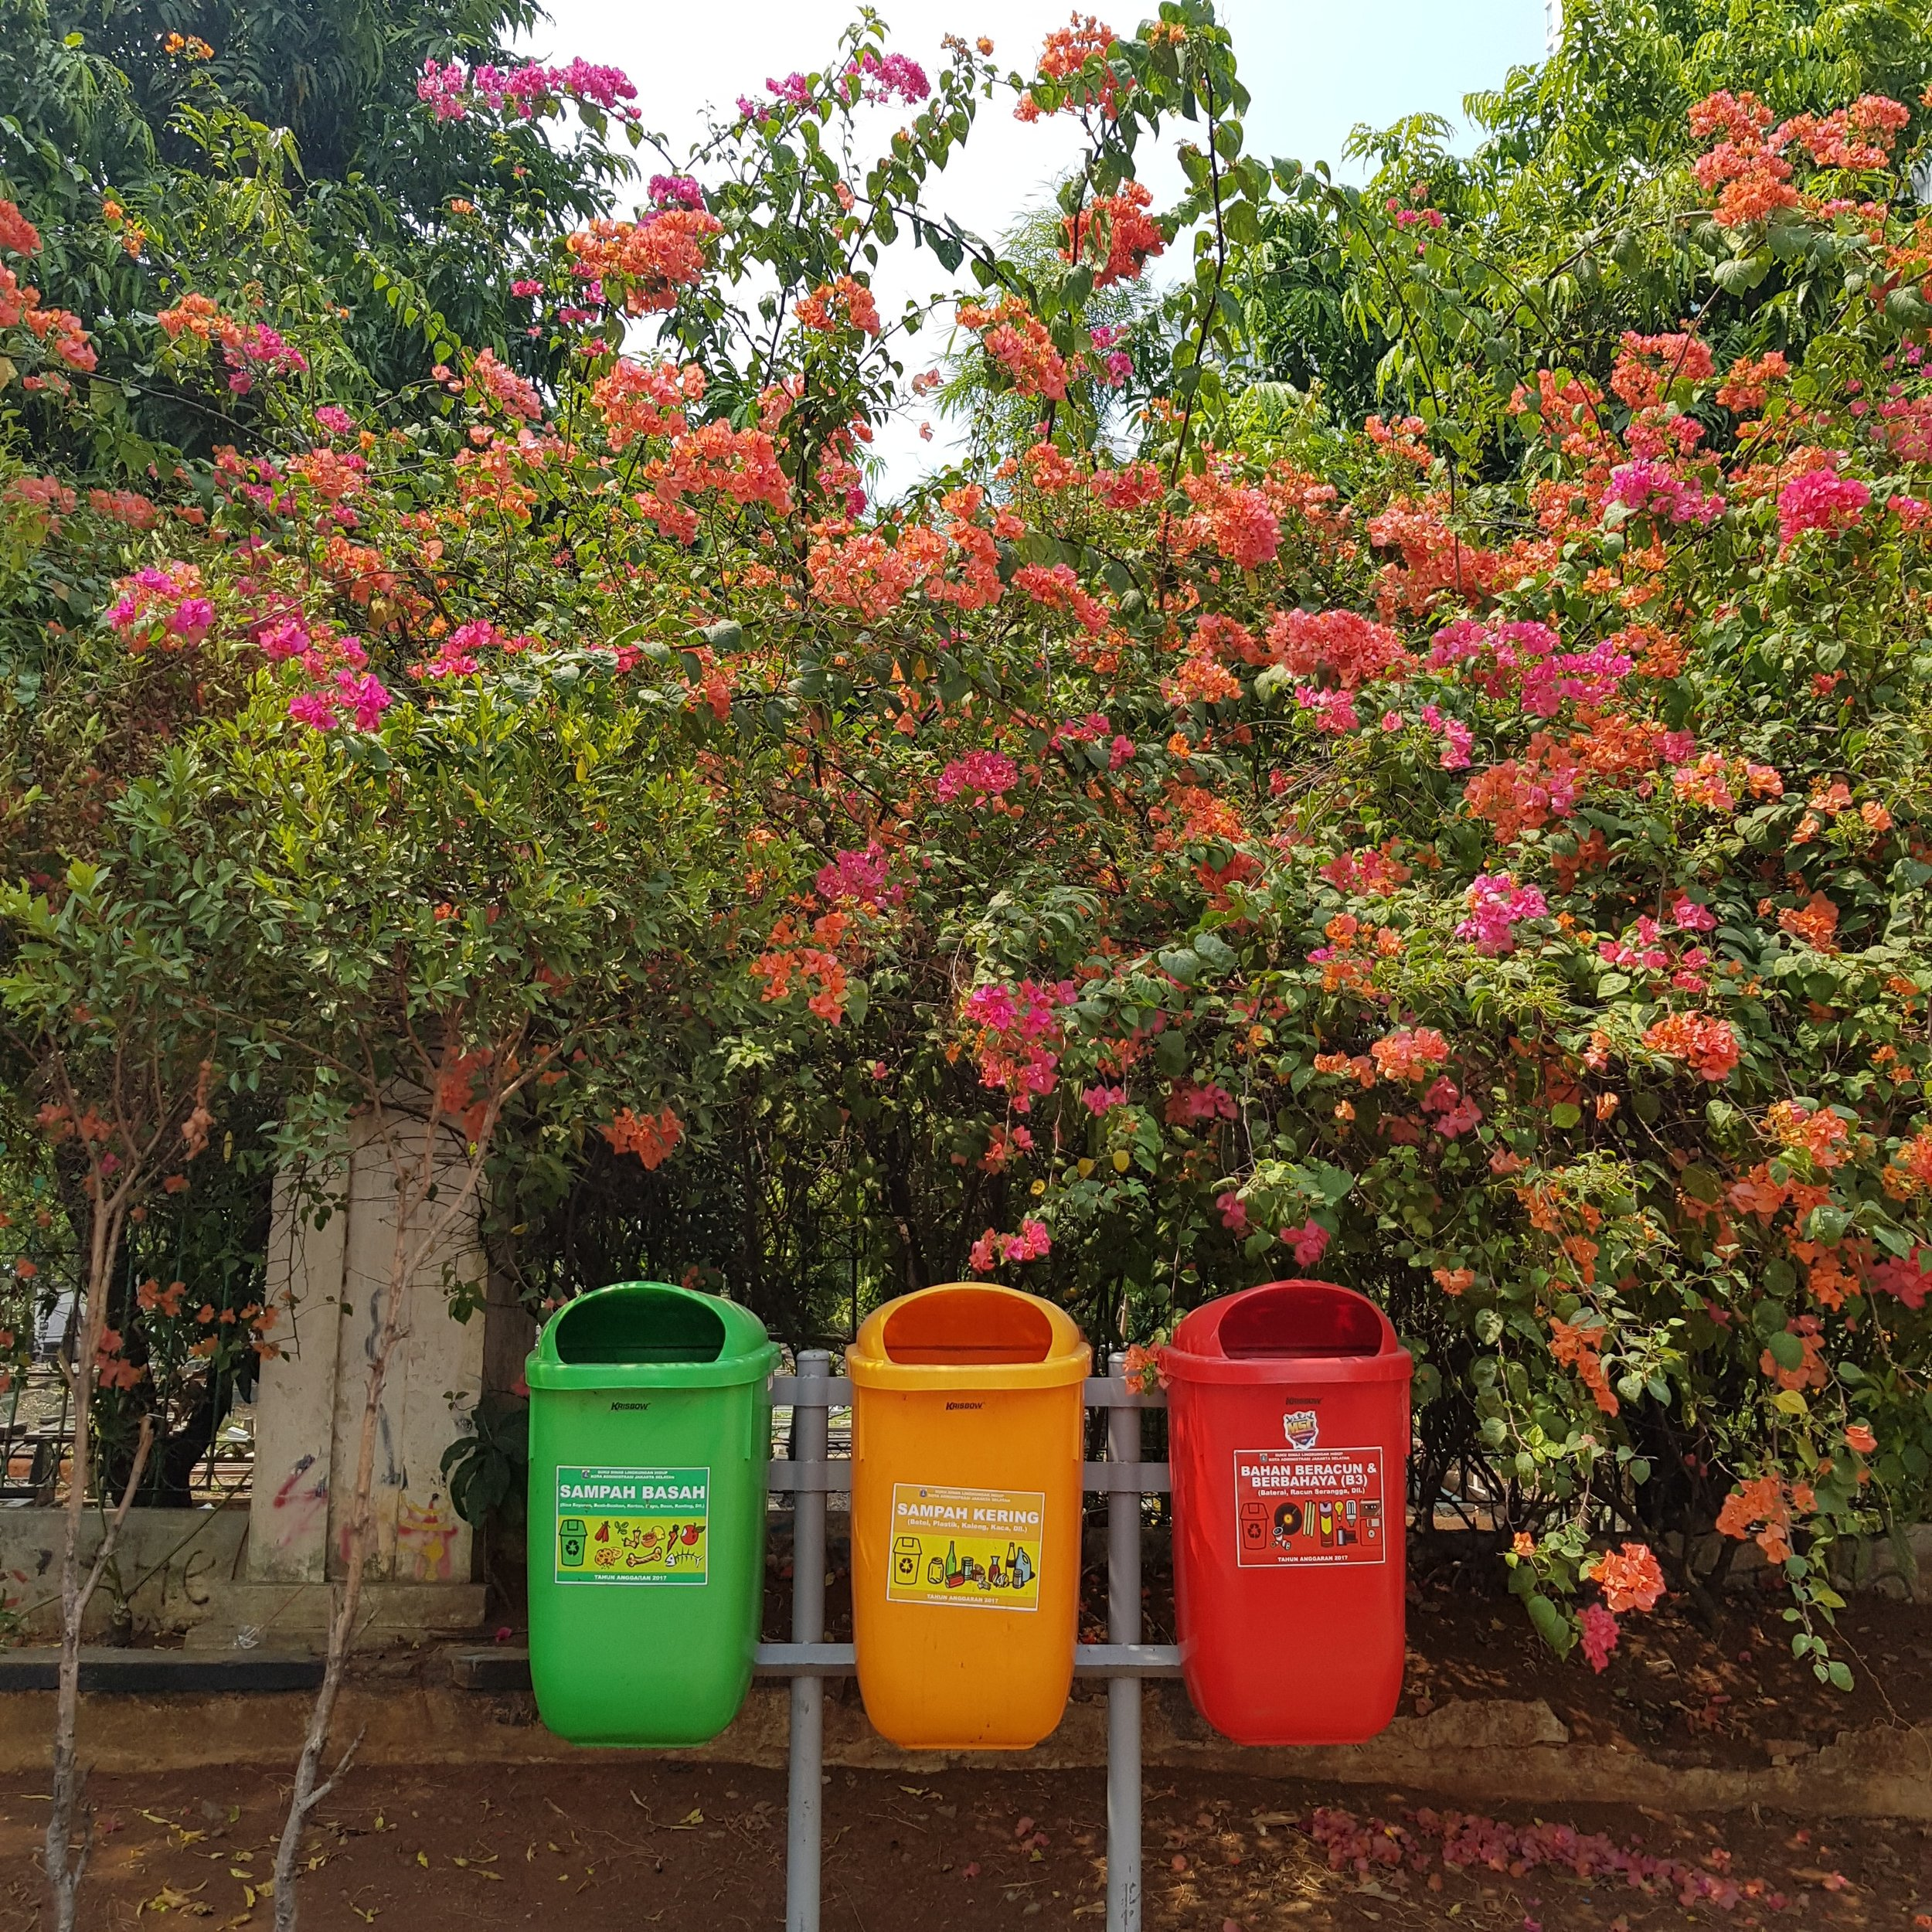 recycling bins in Indoensia. PC: Unsplash